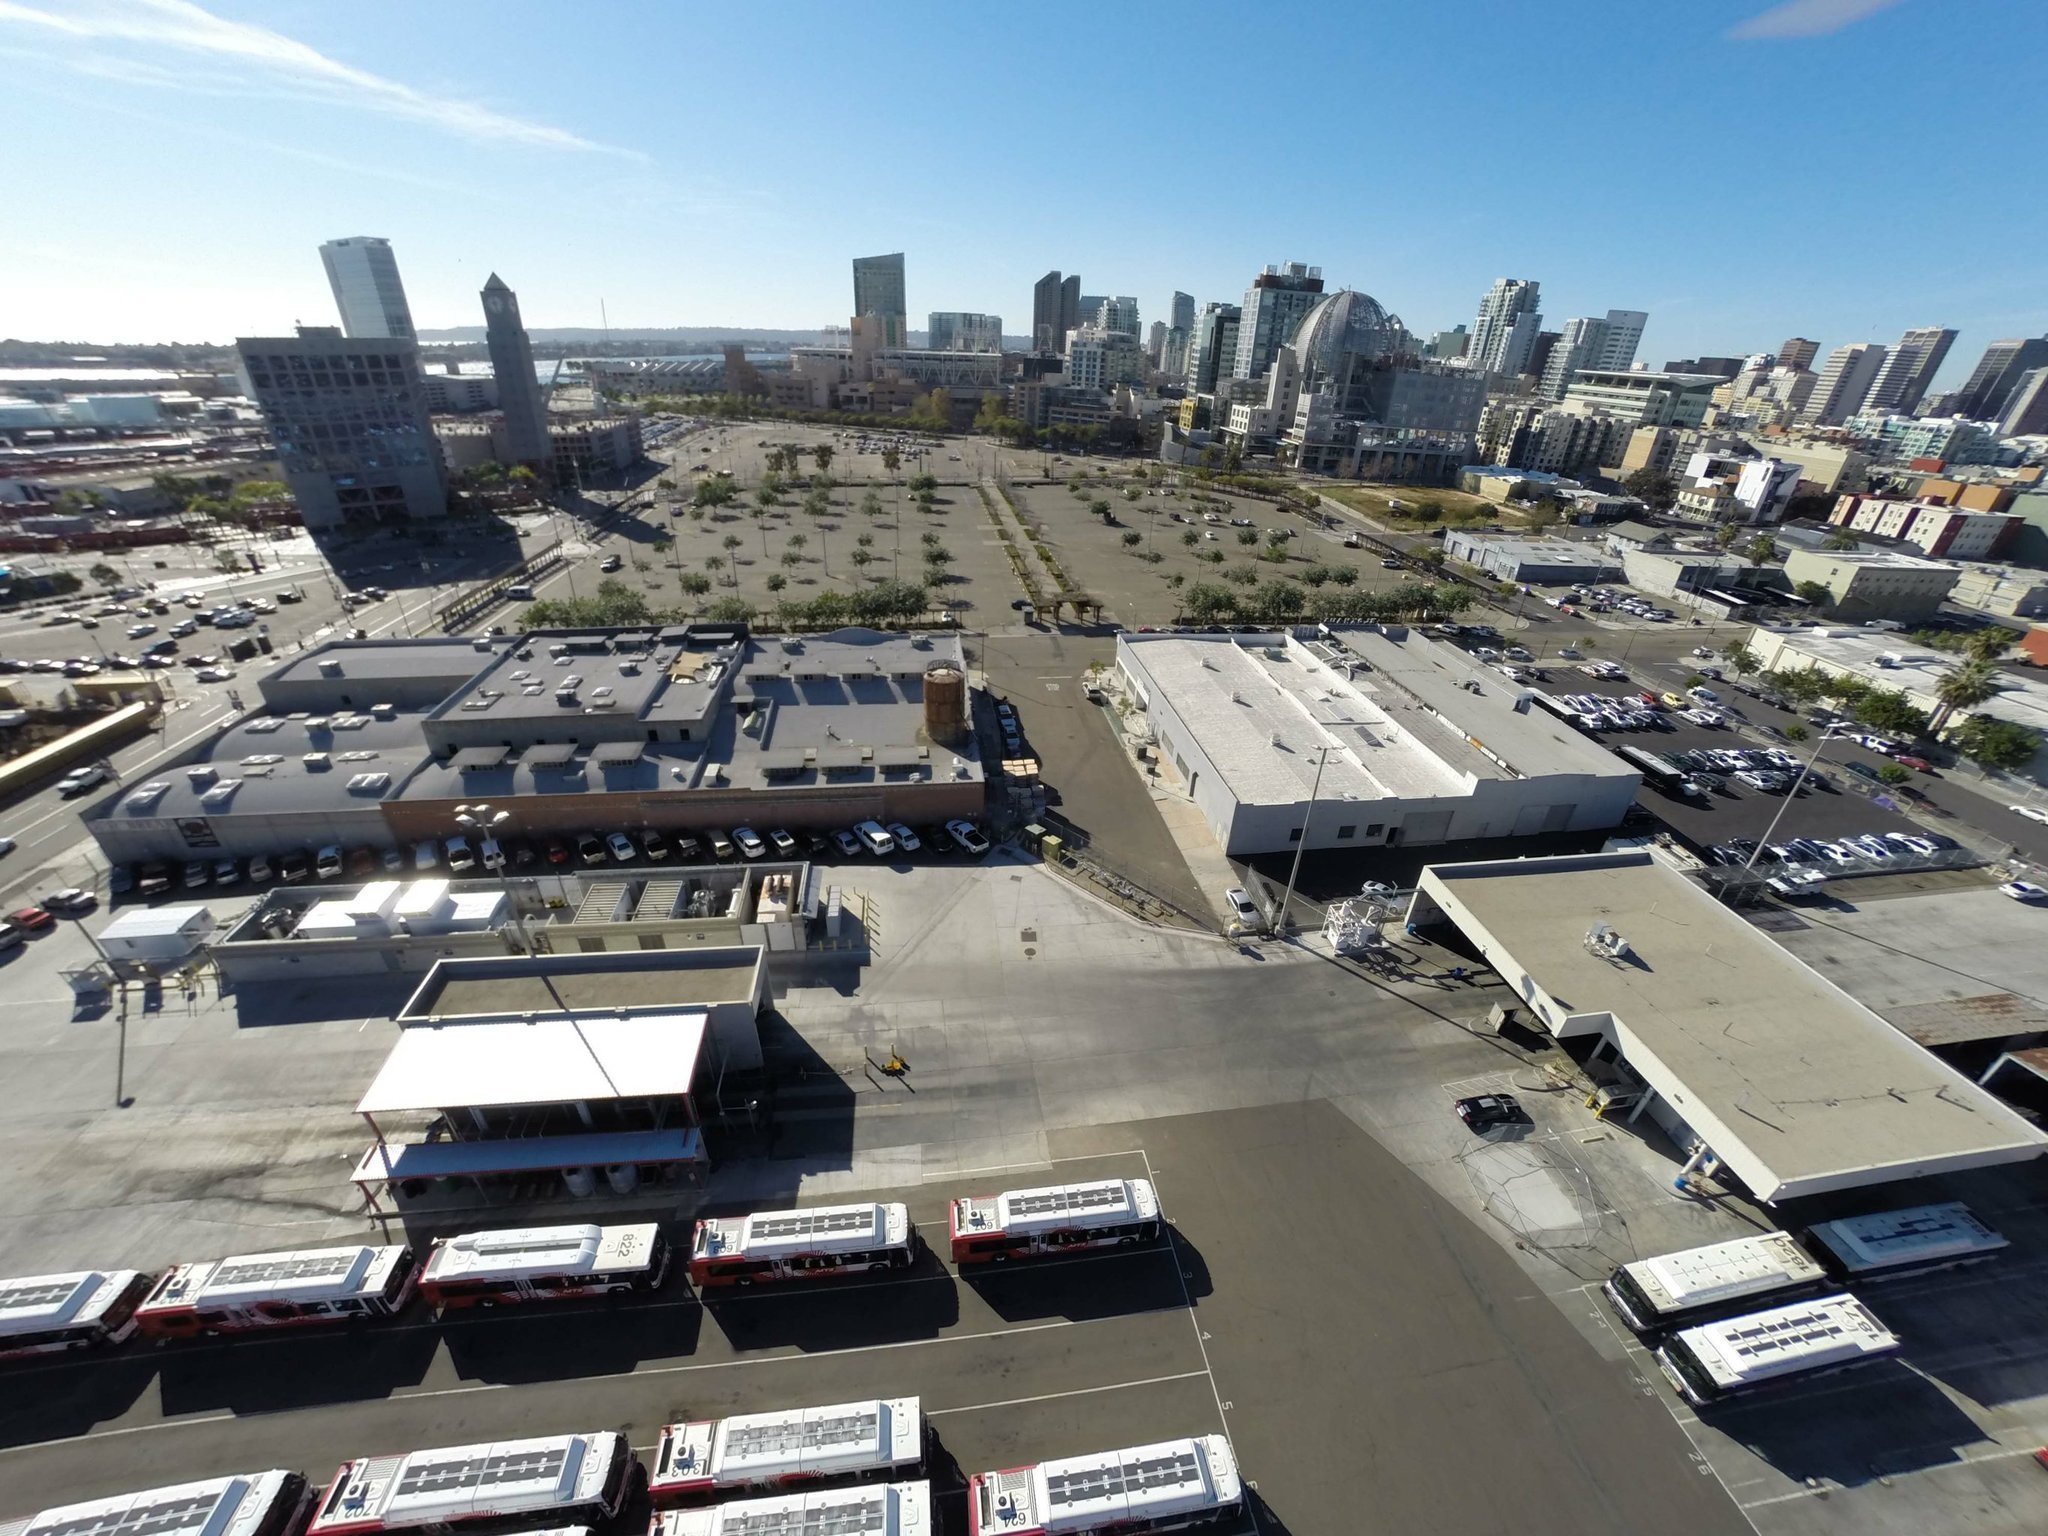 San Diego MTS Operating Facility Location Optimization